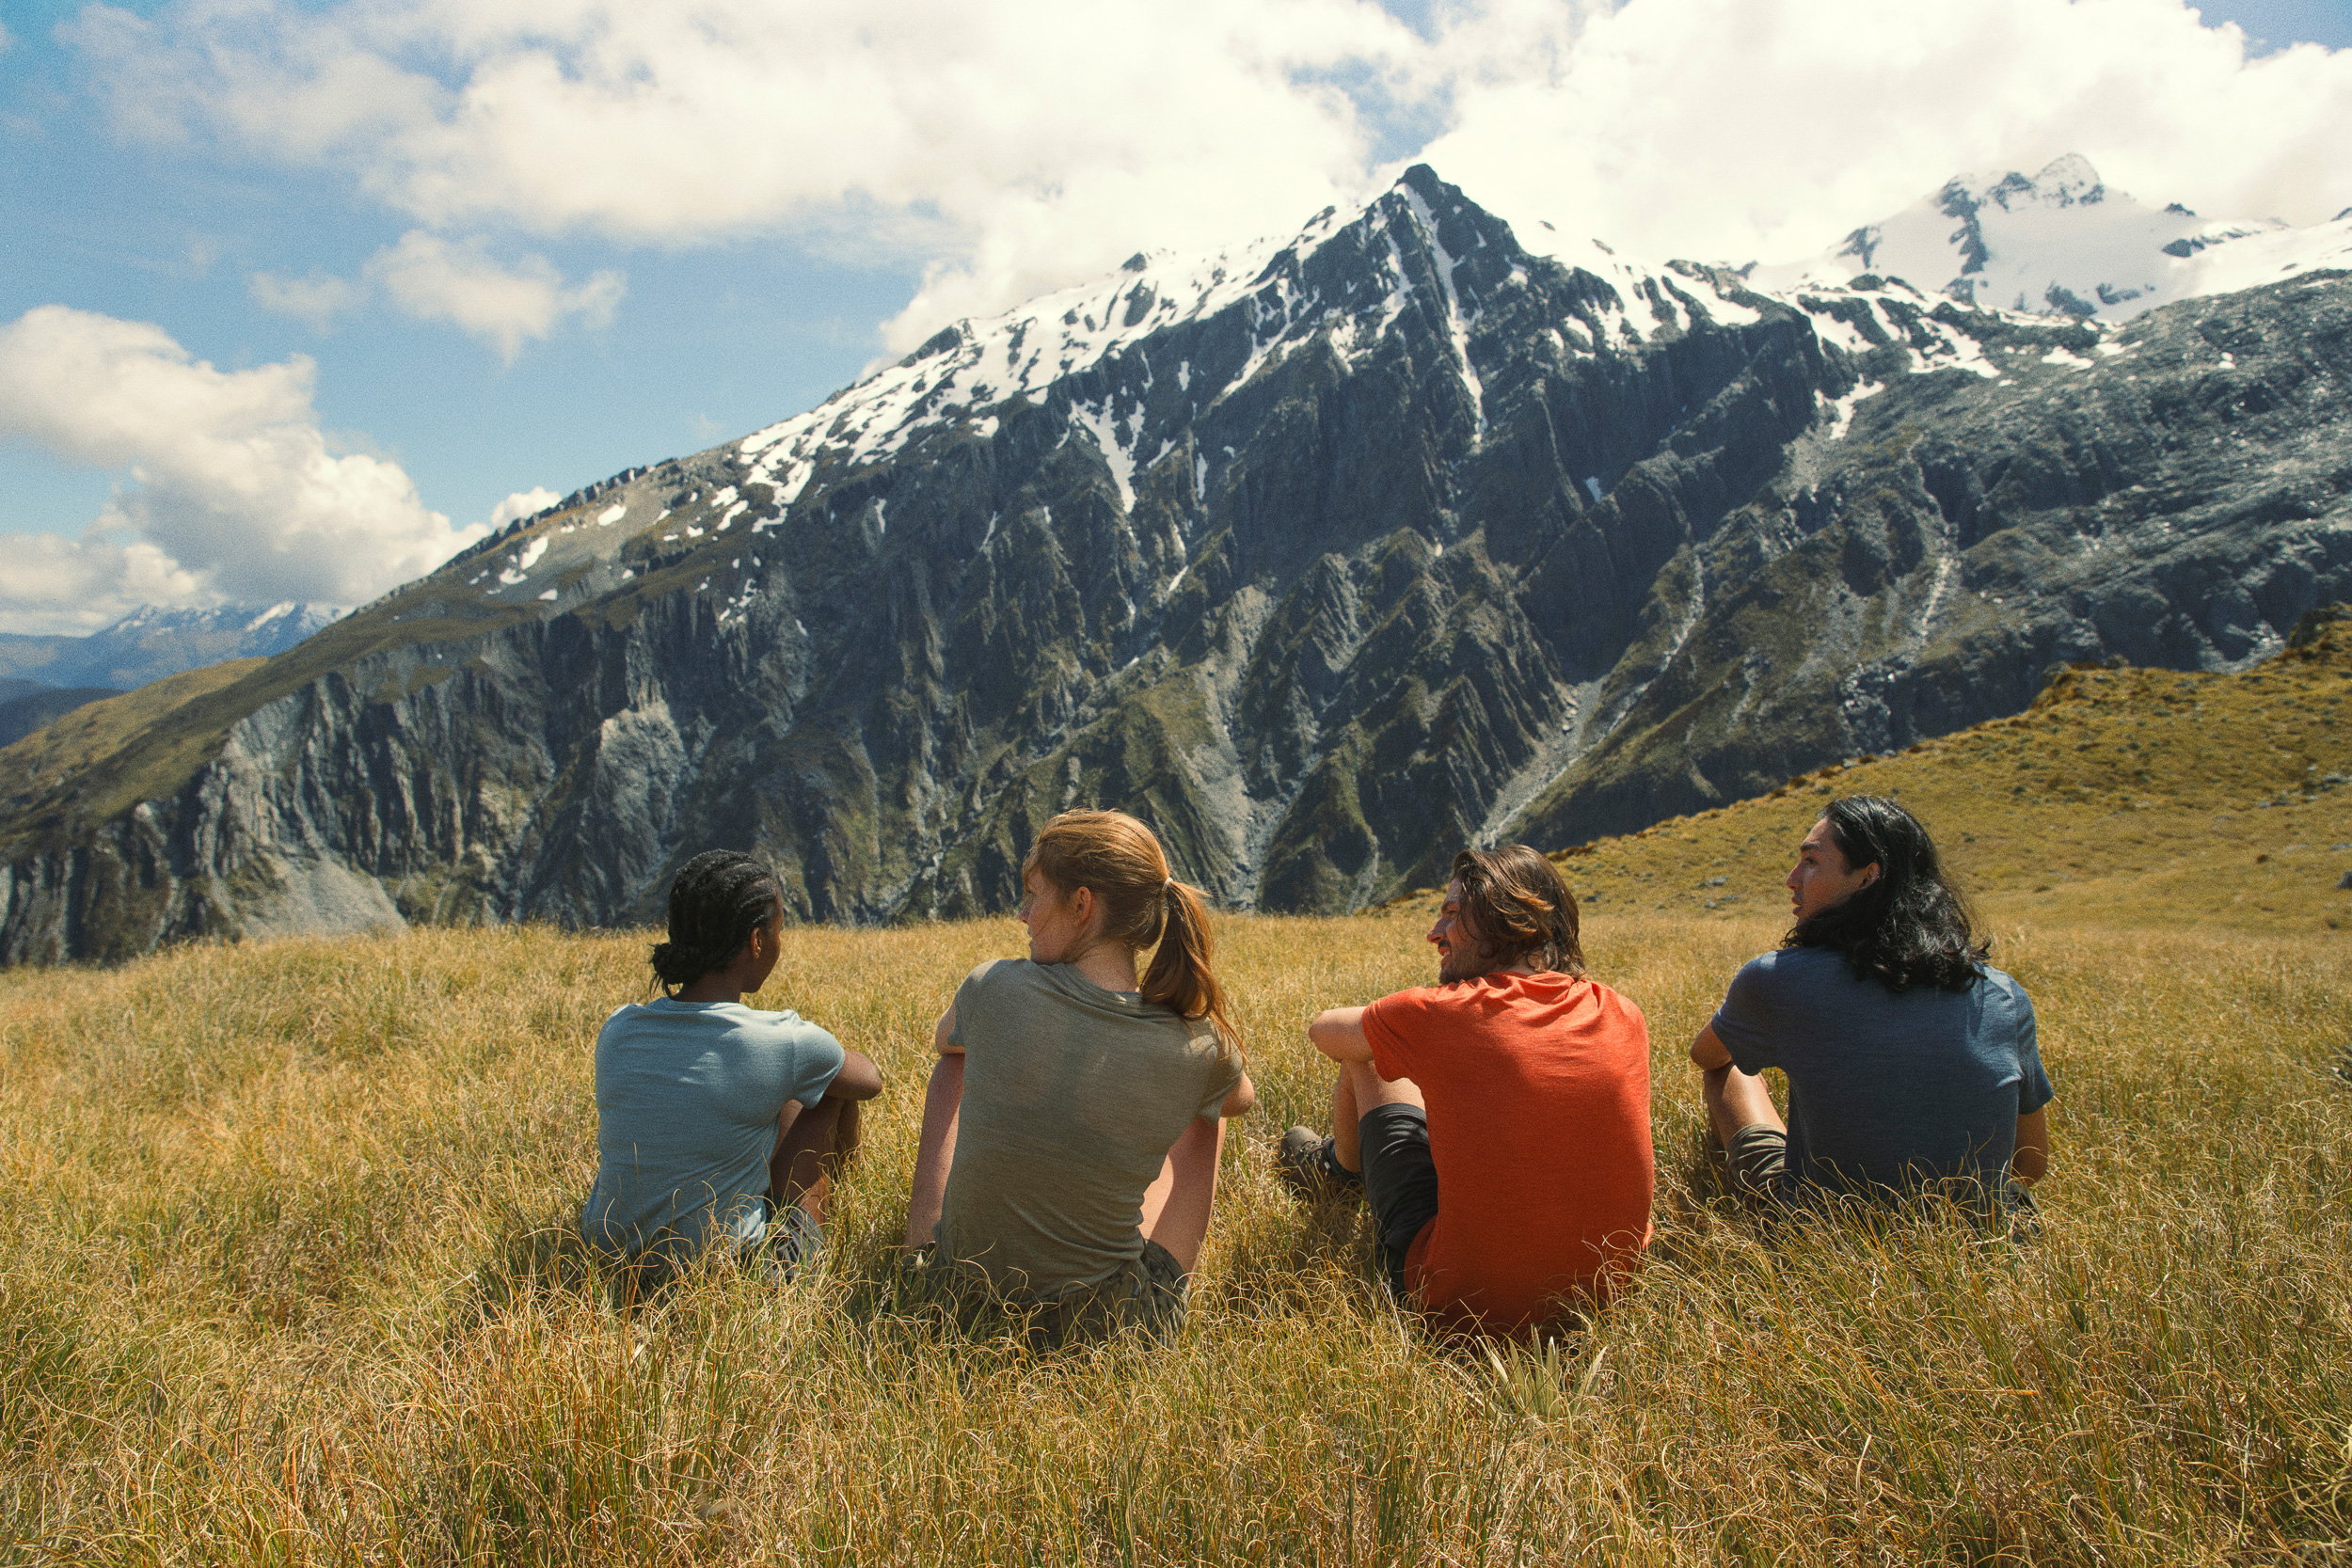 4 people sitting facing mountain away from the camera